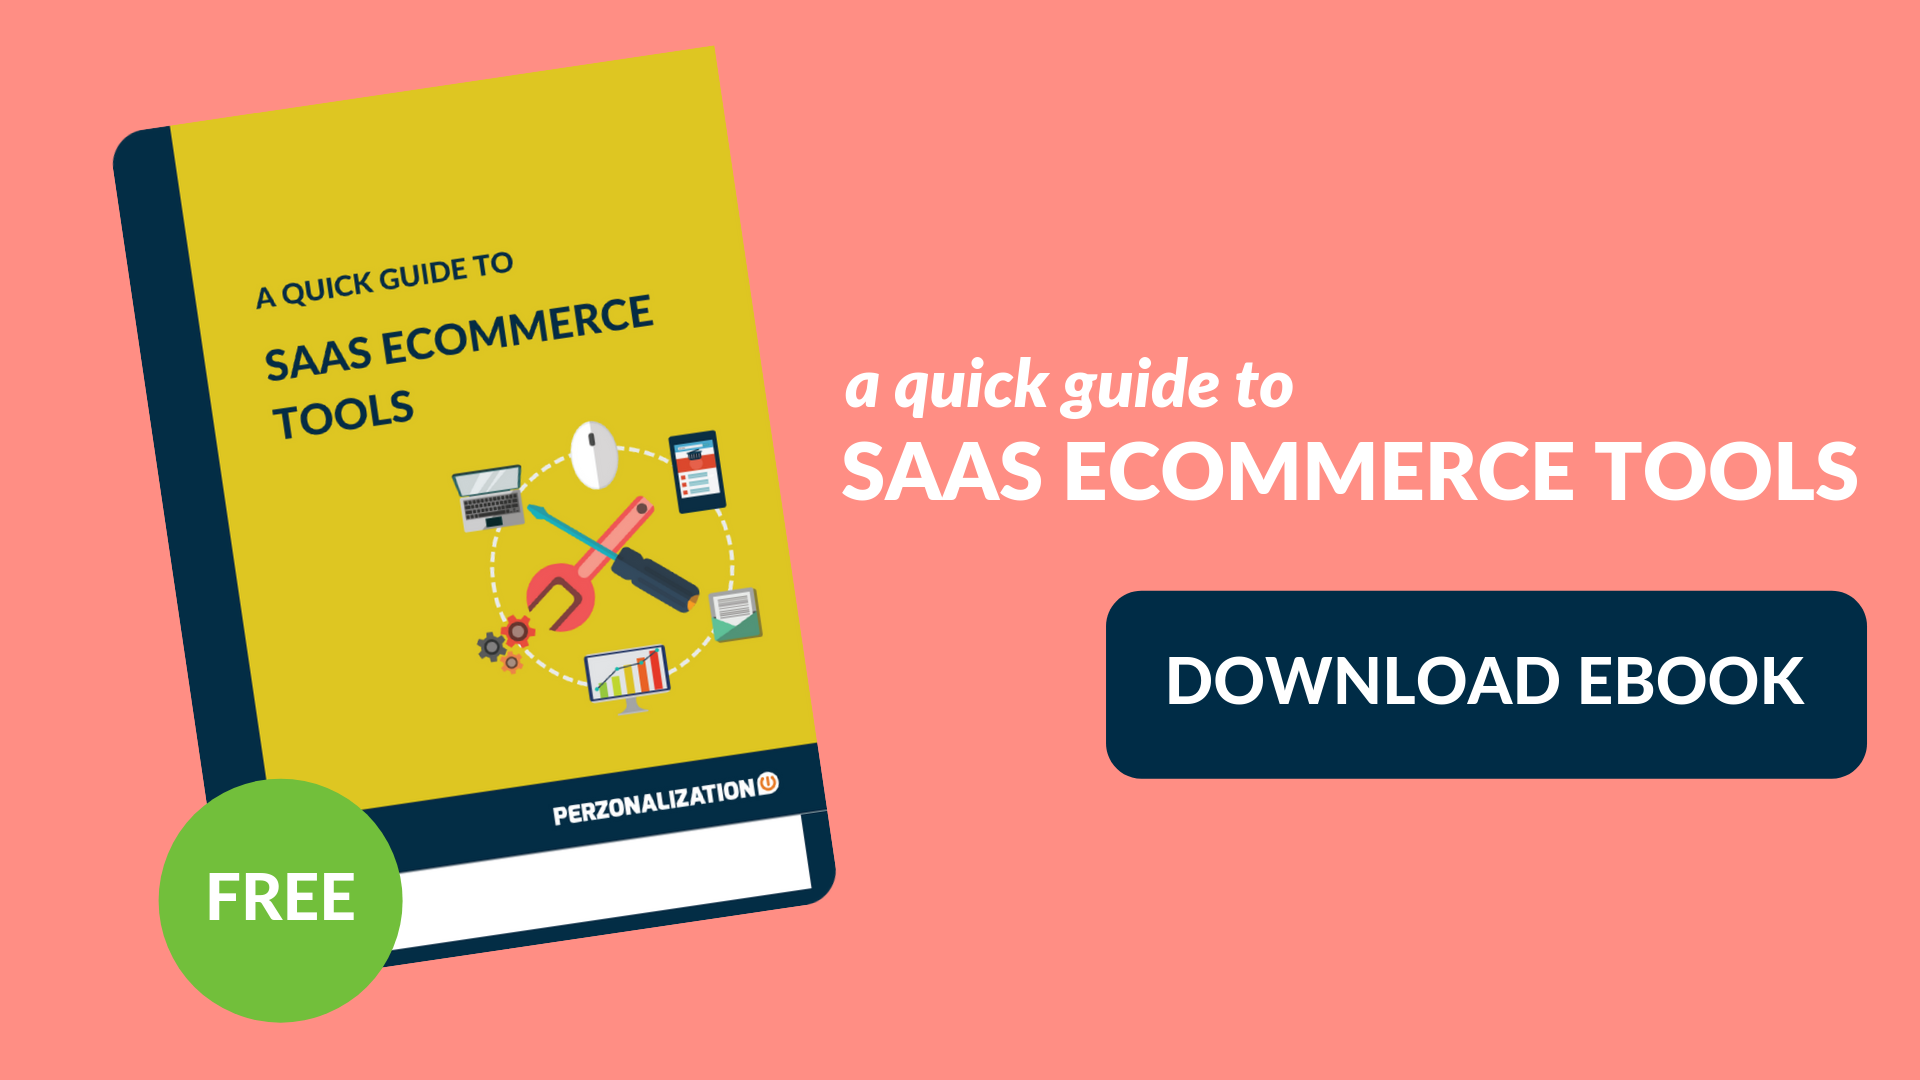 Download free eBook: Guide to SaaS eCommerce tools